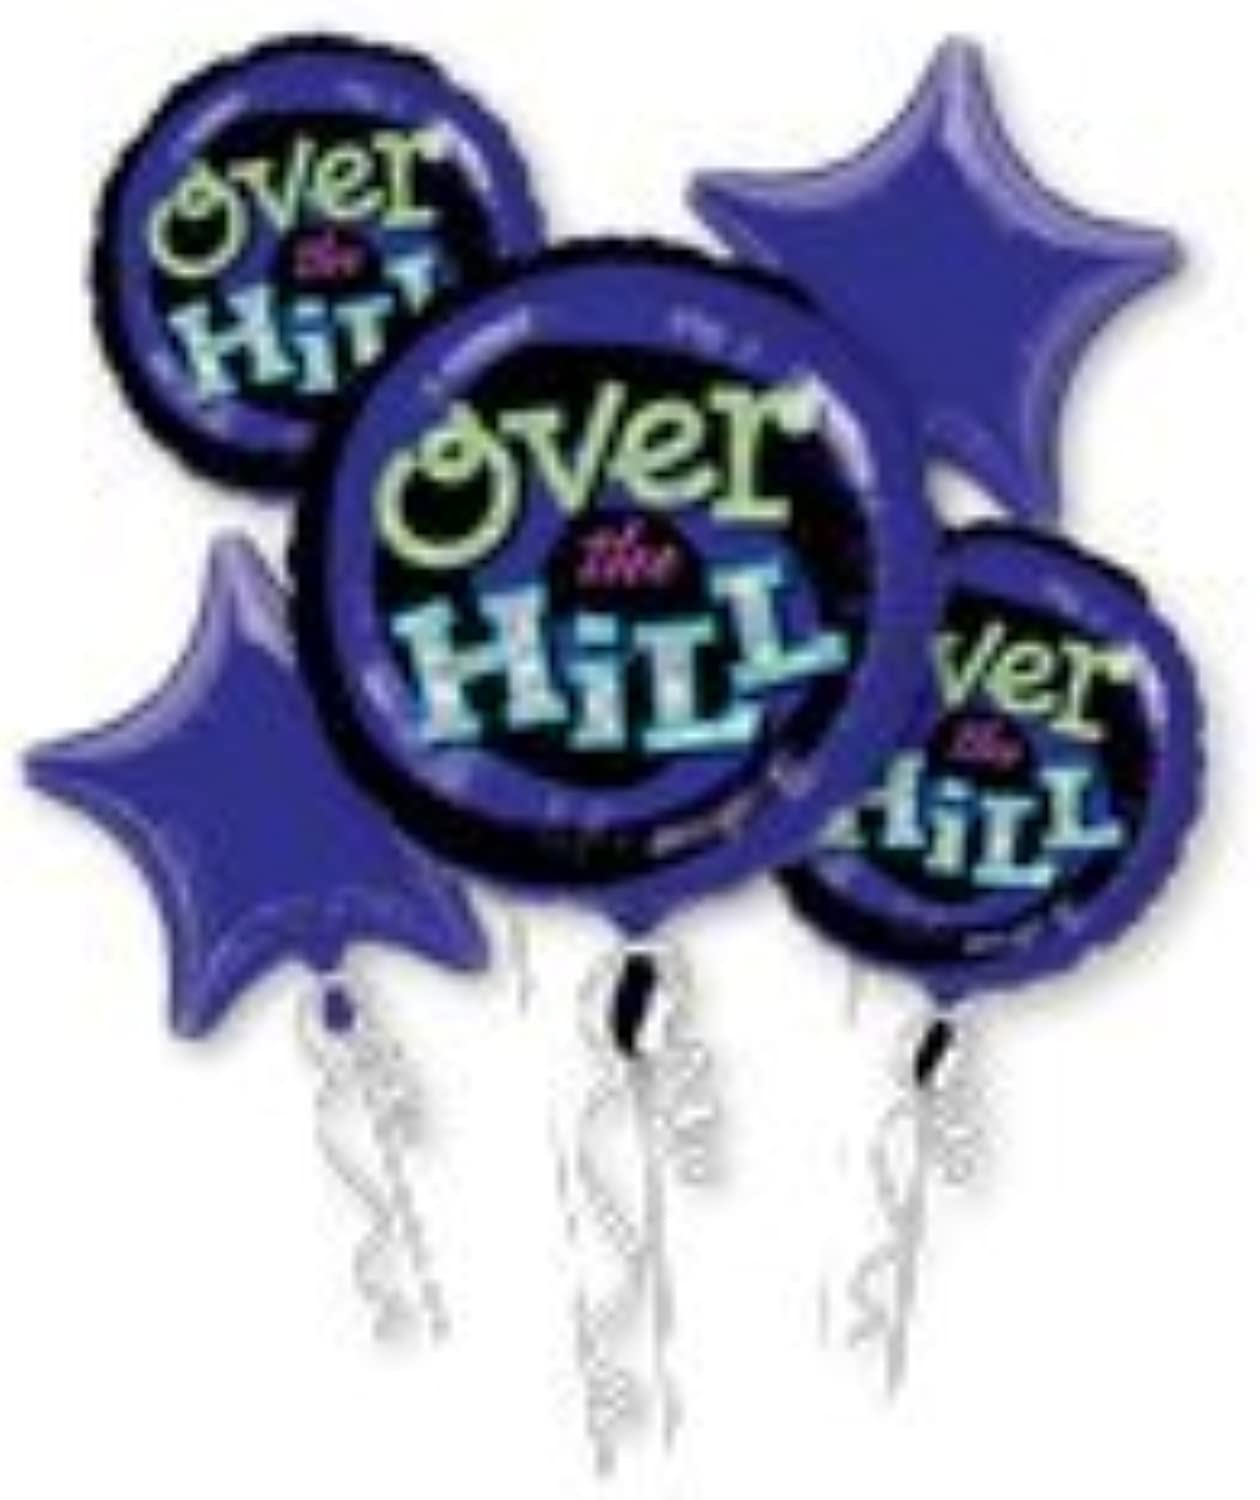 Over the Hill Birthday Balloons  Adult Birthday Balloon Bouquet by American Balloon Company